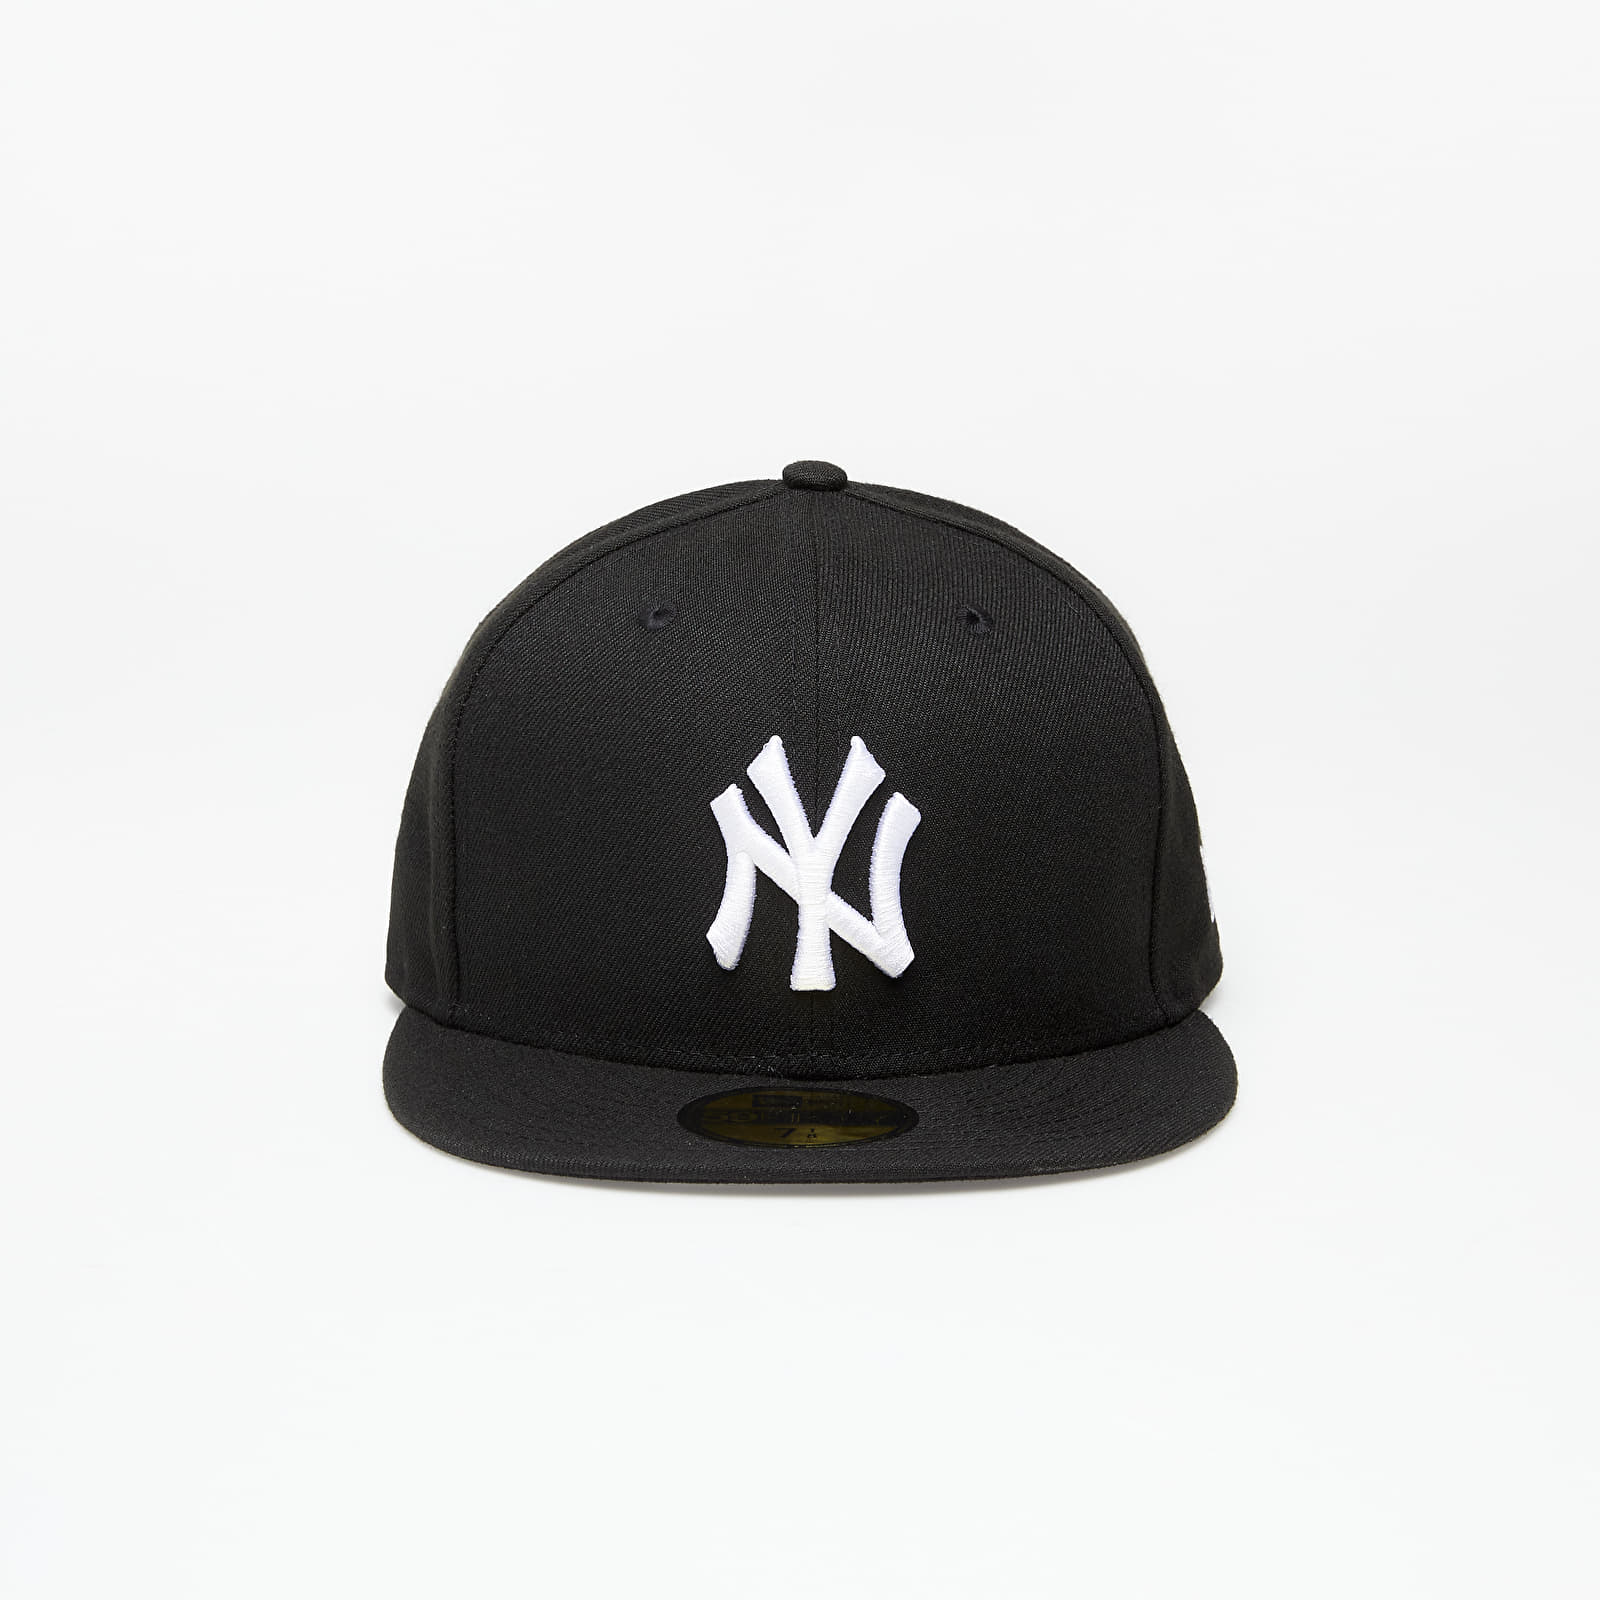 New Era Cap 59Fifty Mlb Basic New York Yankees Black/ White Log 7 1/8